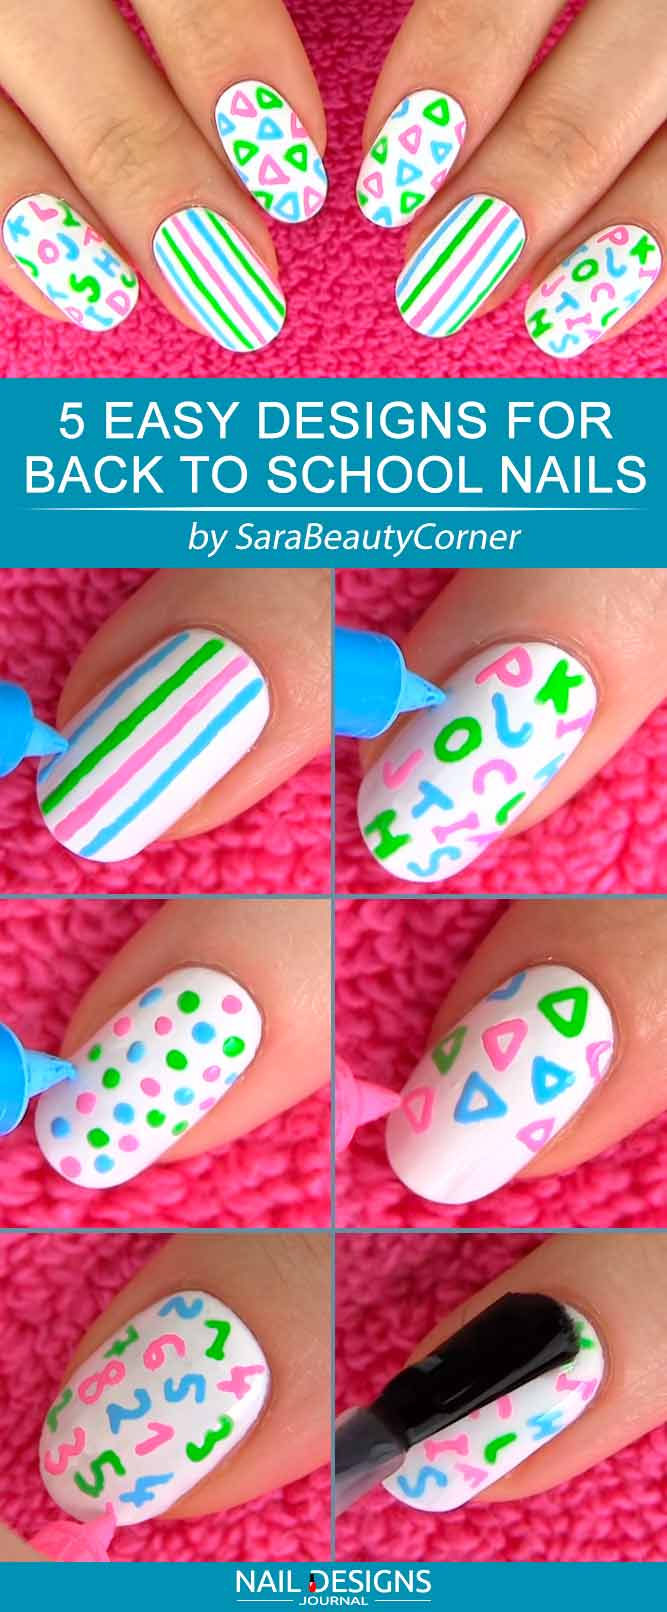 Easy Nail Designs For Back To School Nails #whitenails #dotsnails #stripesnails #schoolnails #backtoschoolnails